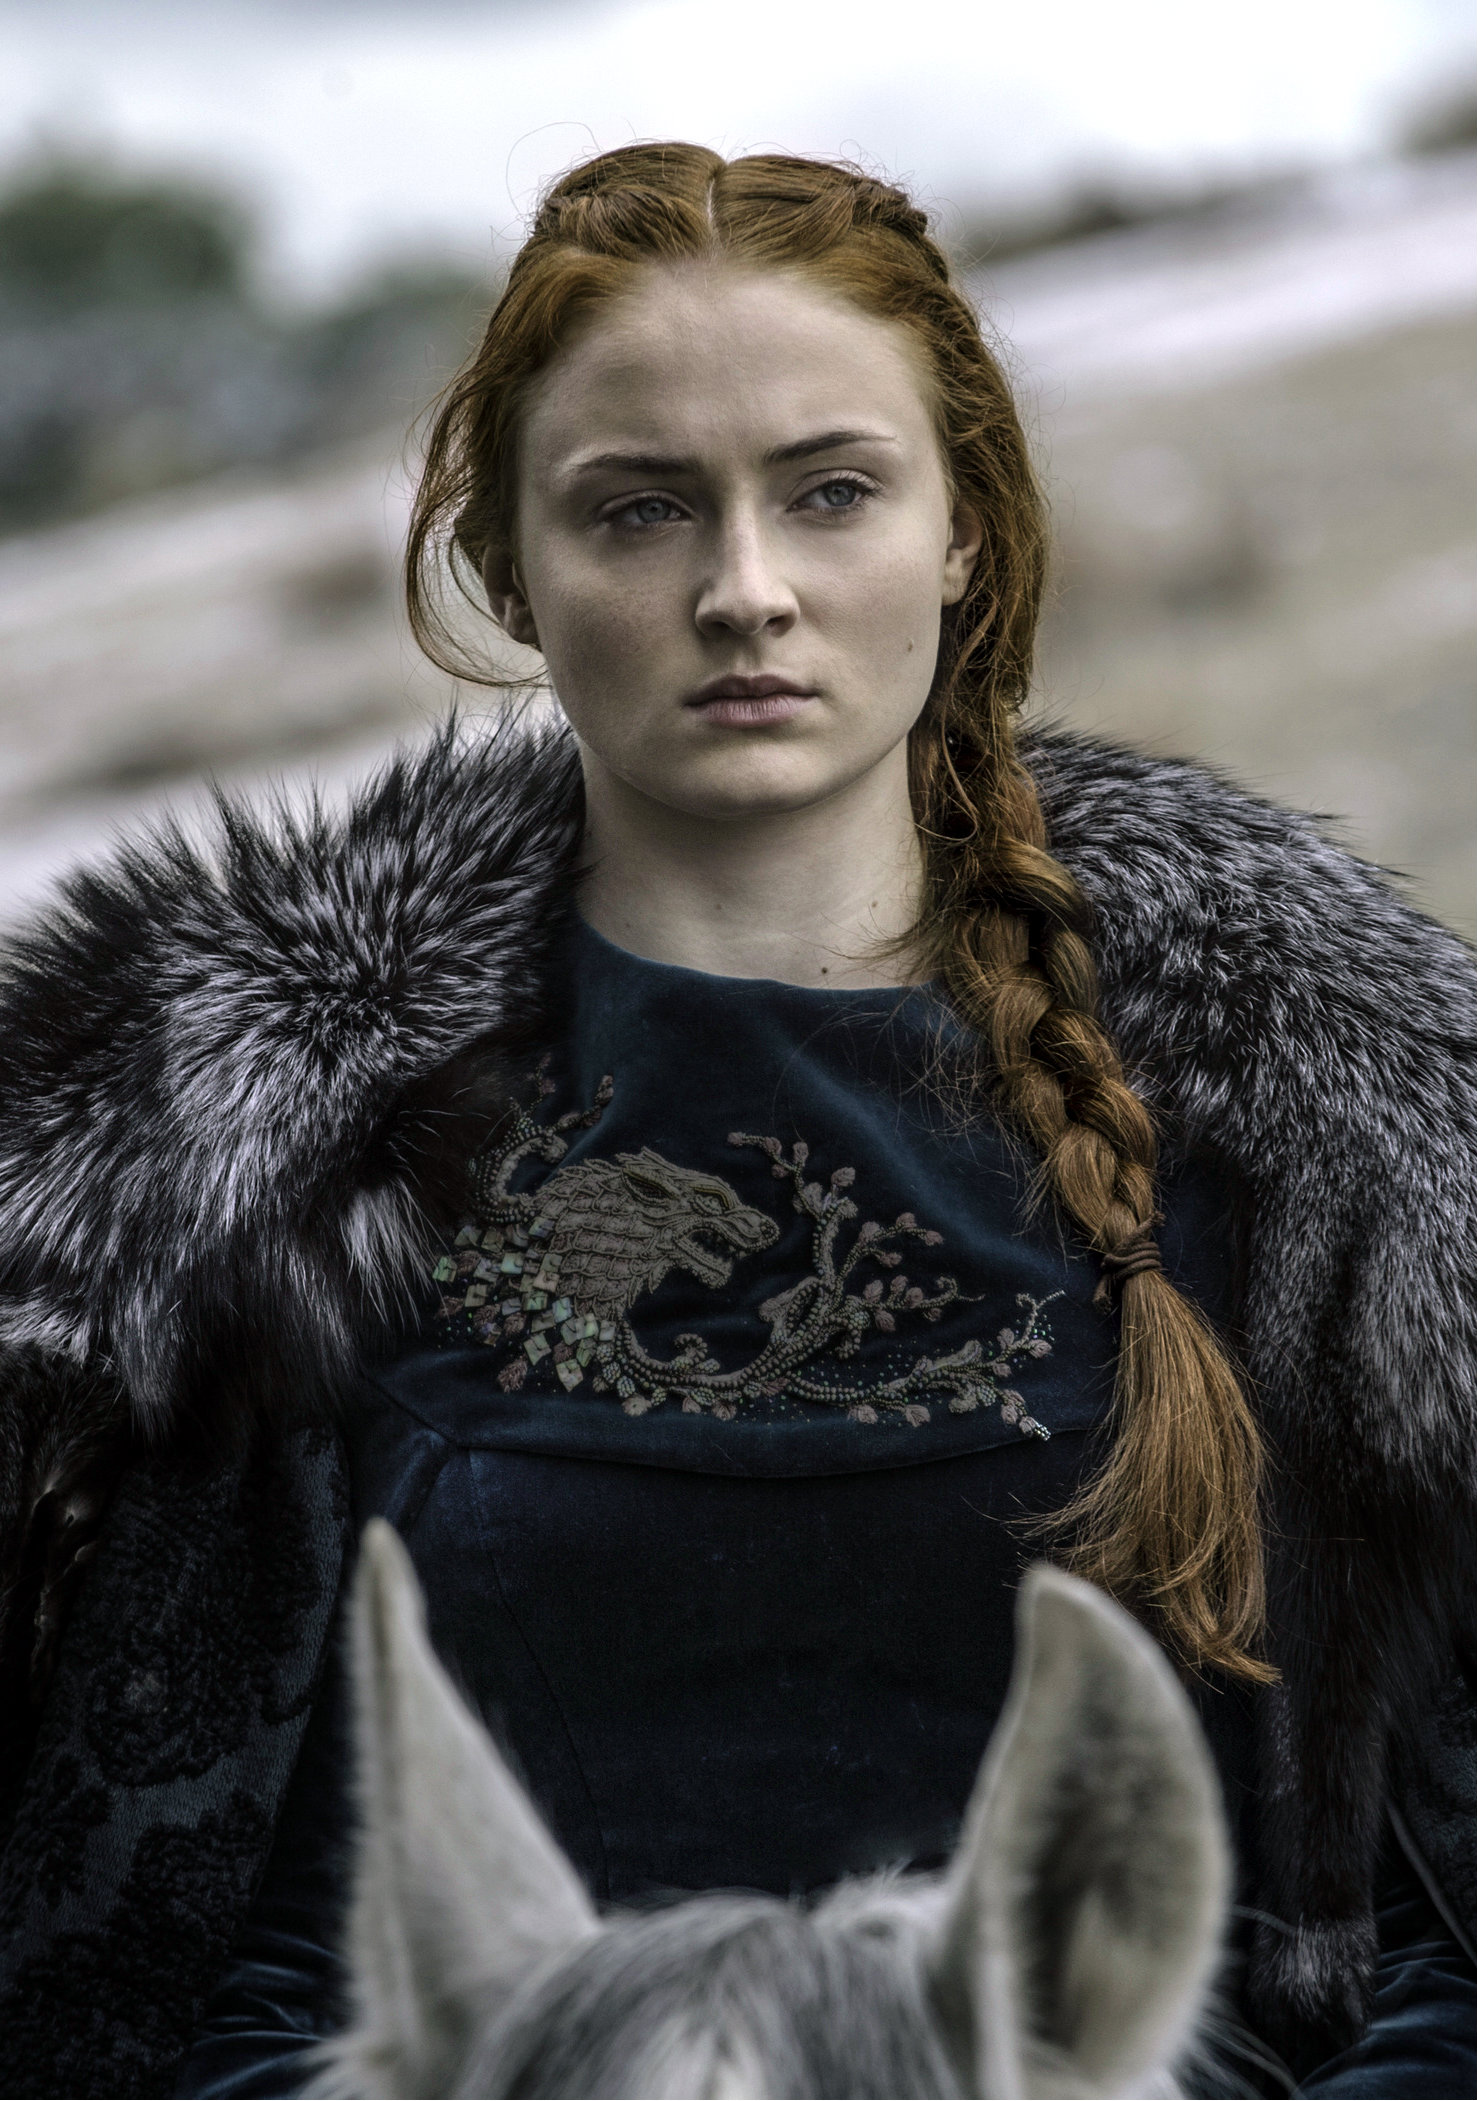 Latest 'Game of Thrones' Trailer: Sansa Stark Is Over Everyone's ...